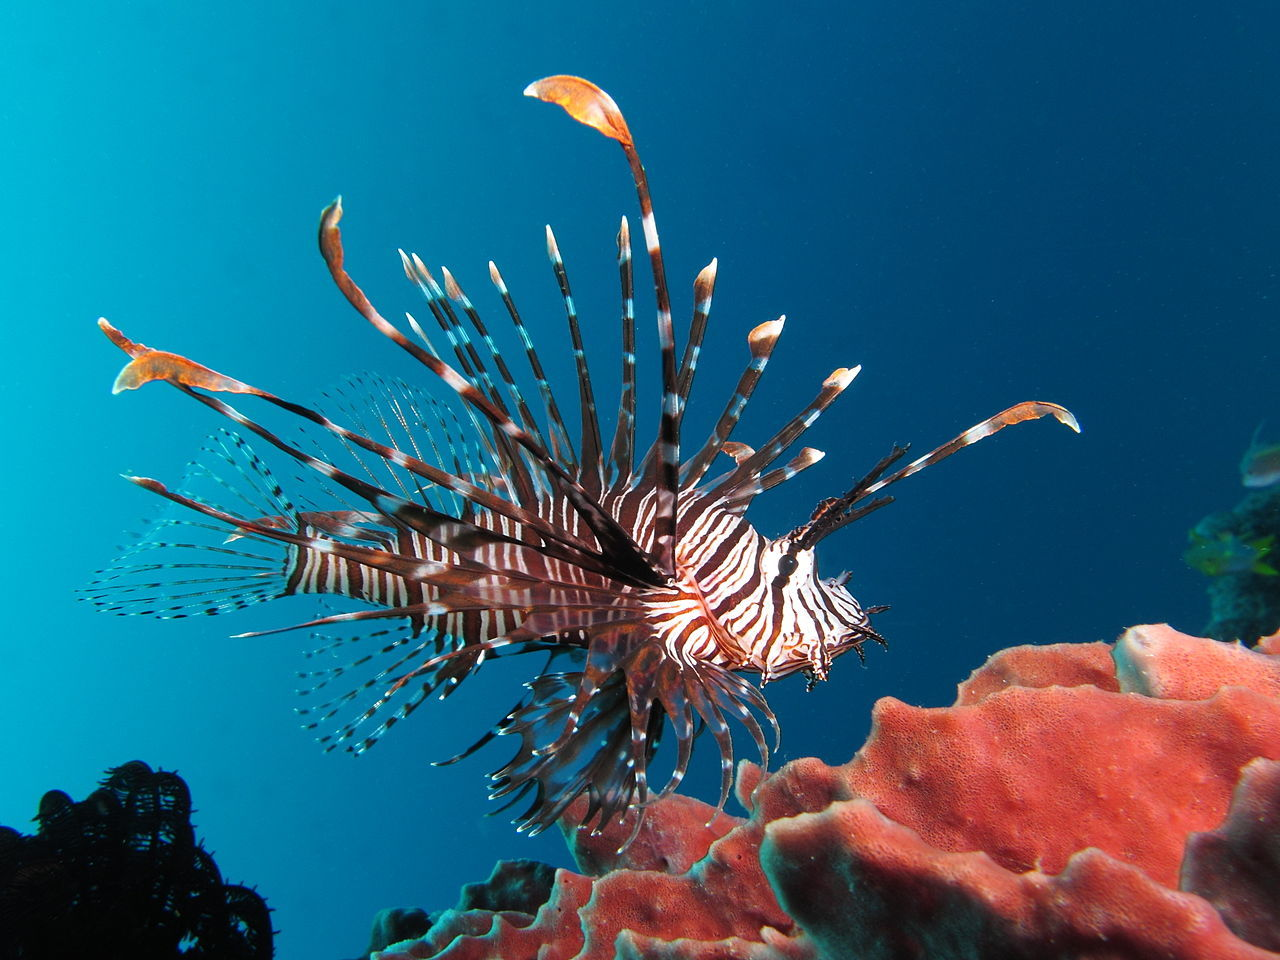 New study reveals no measurable effect of lionfish on native prey fish in Belize